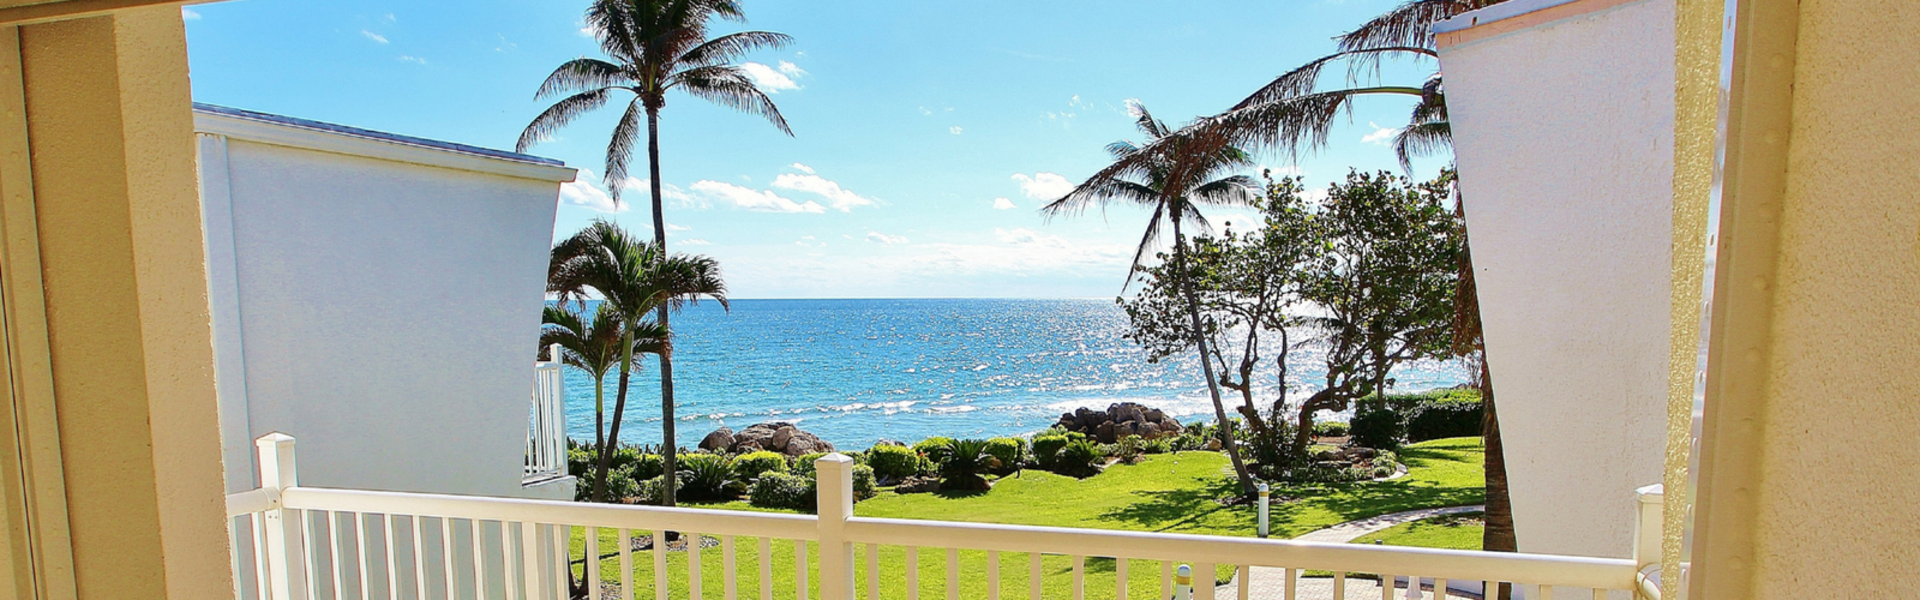 2 BEDROOMS / 2 BATHROOMS, DEERFIELD BEACH OCEANFRONT VILLA FOR SALE